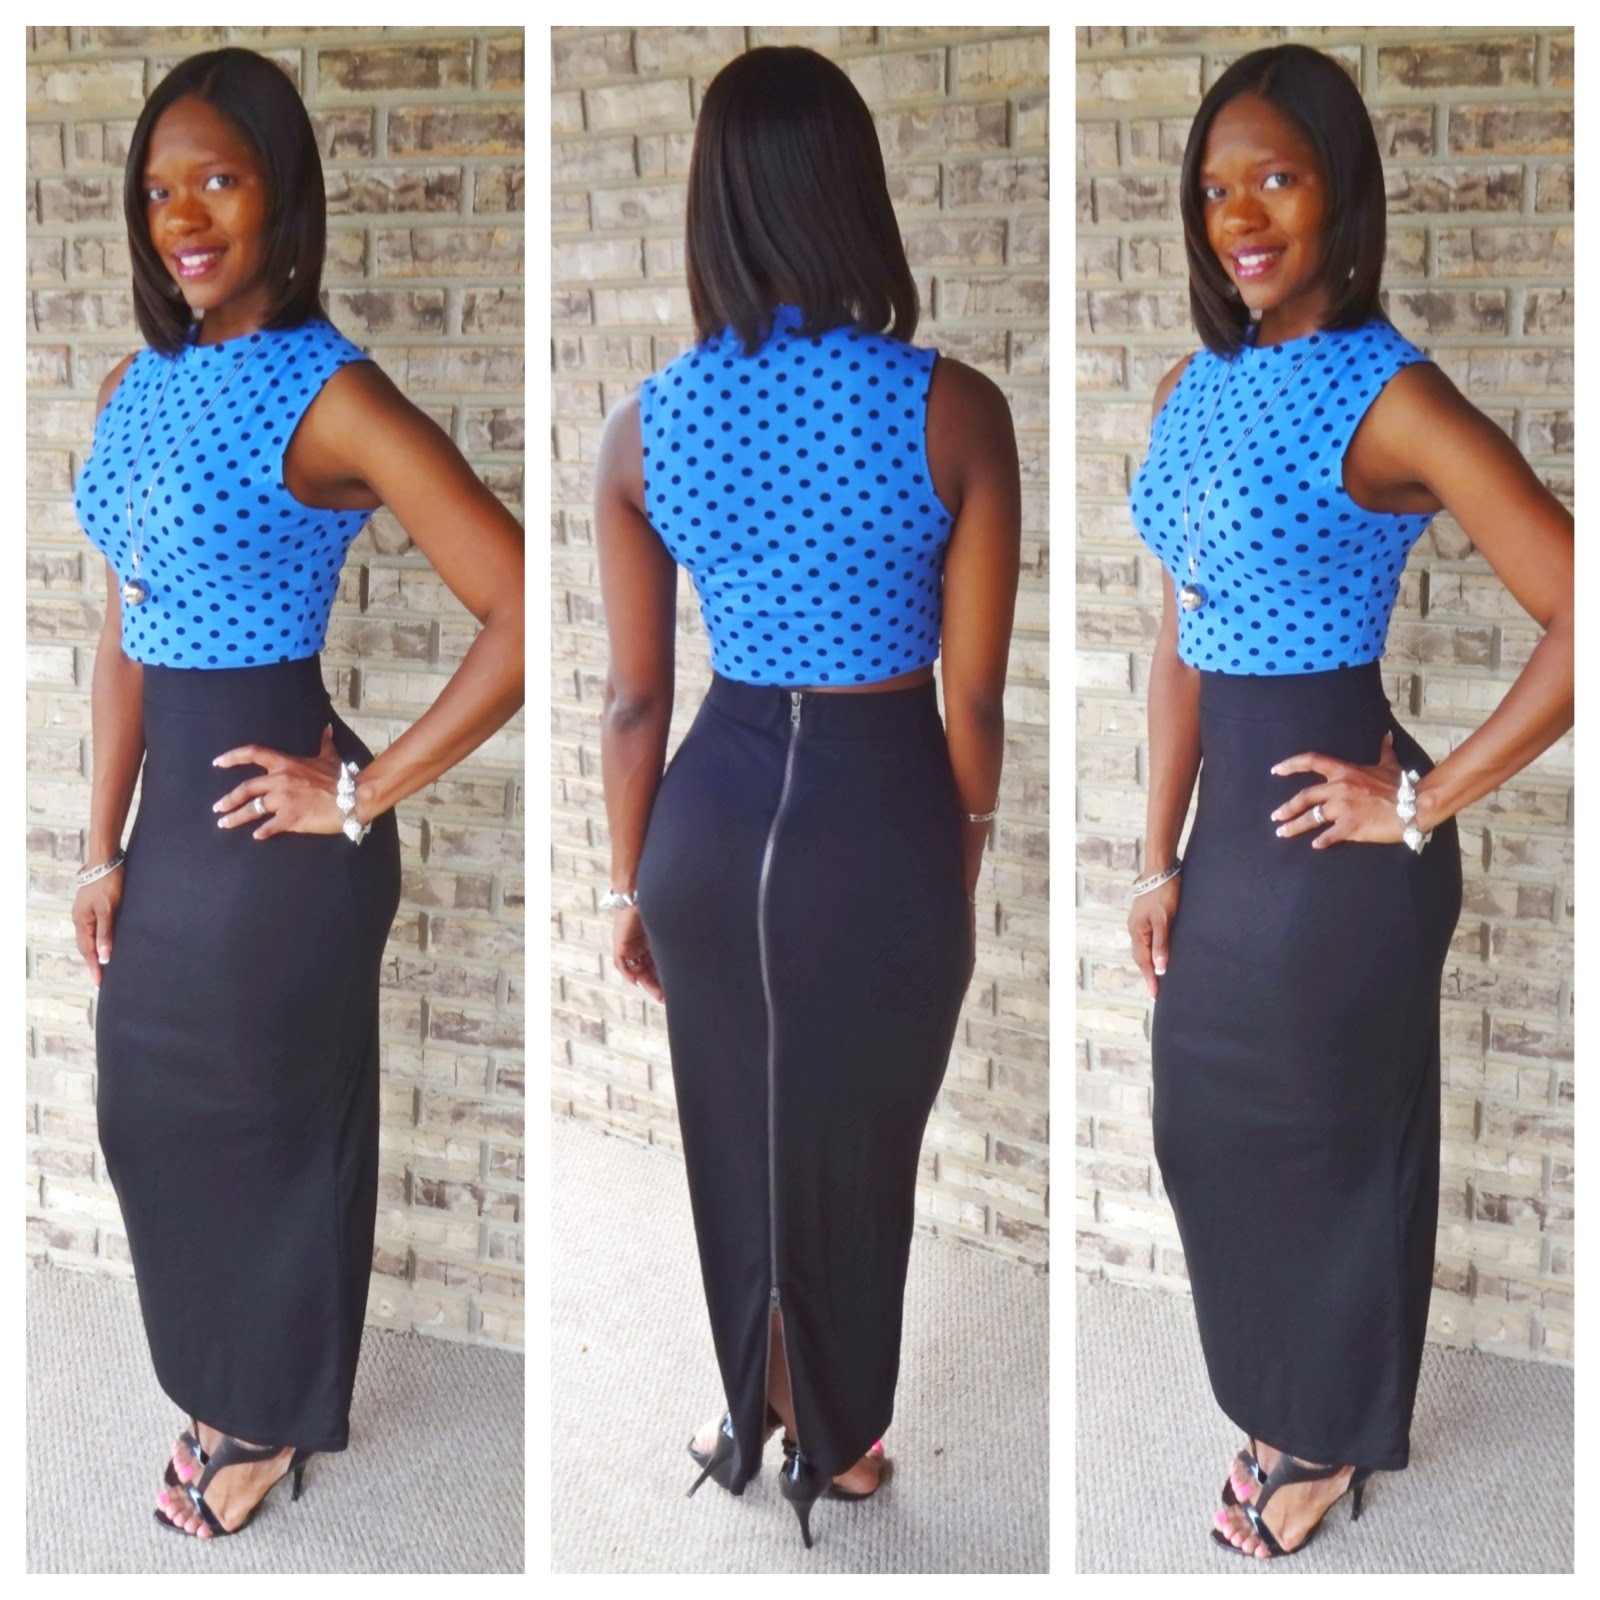 The Long Fitted Maxi Skirt Trend | Welcome to Amerie's Blog